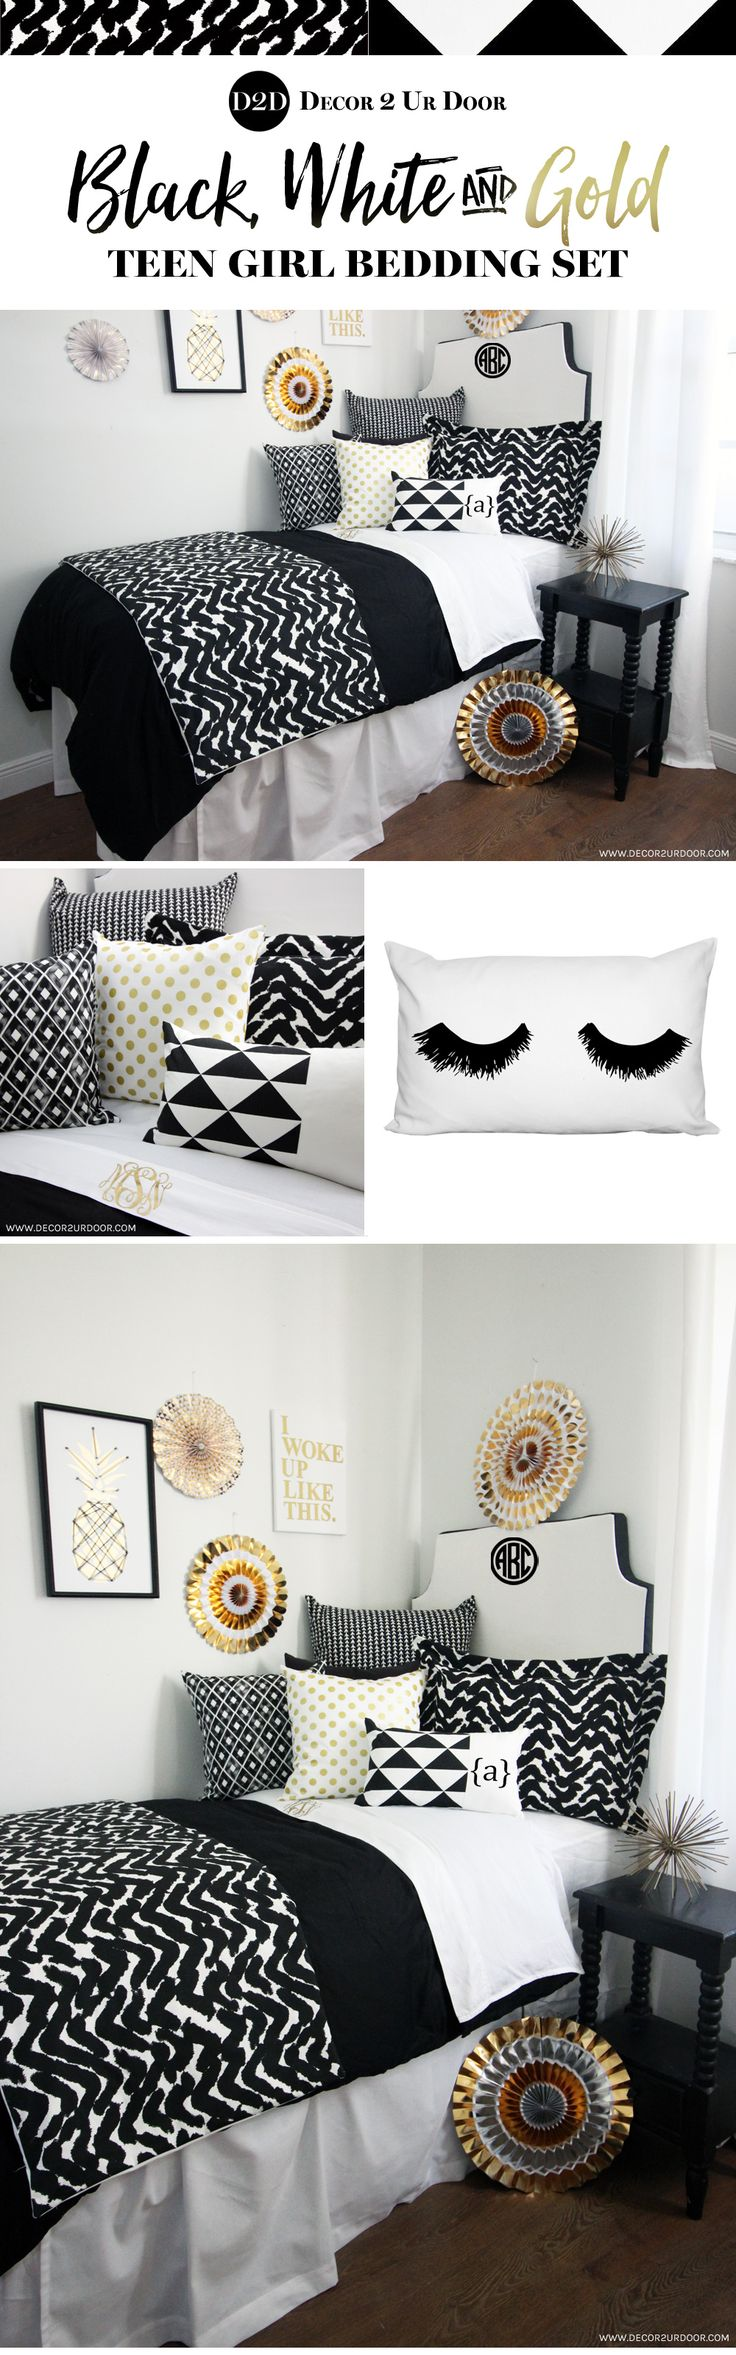 Trendy Black and White Dorm Room. Bold, black, and beautiful. This black and white (and gold!) dorm bedding set screams minimalist magnificence. These brand new fabrics feature geometric shapes, marker inspired prints, and textured furs. We're going back to basics here. Add a pop of gold in monograms + our gold polka dot pillow for a bit of glitz and glam. This black and white marker dorm bedding will be the absolute rage.